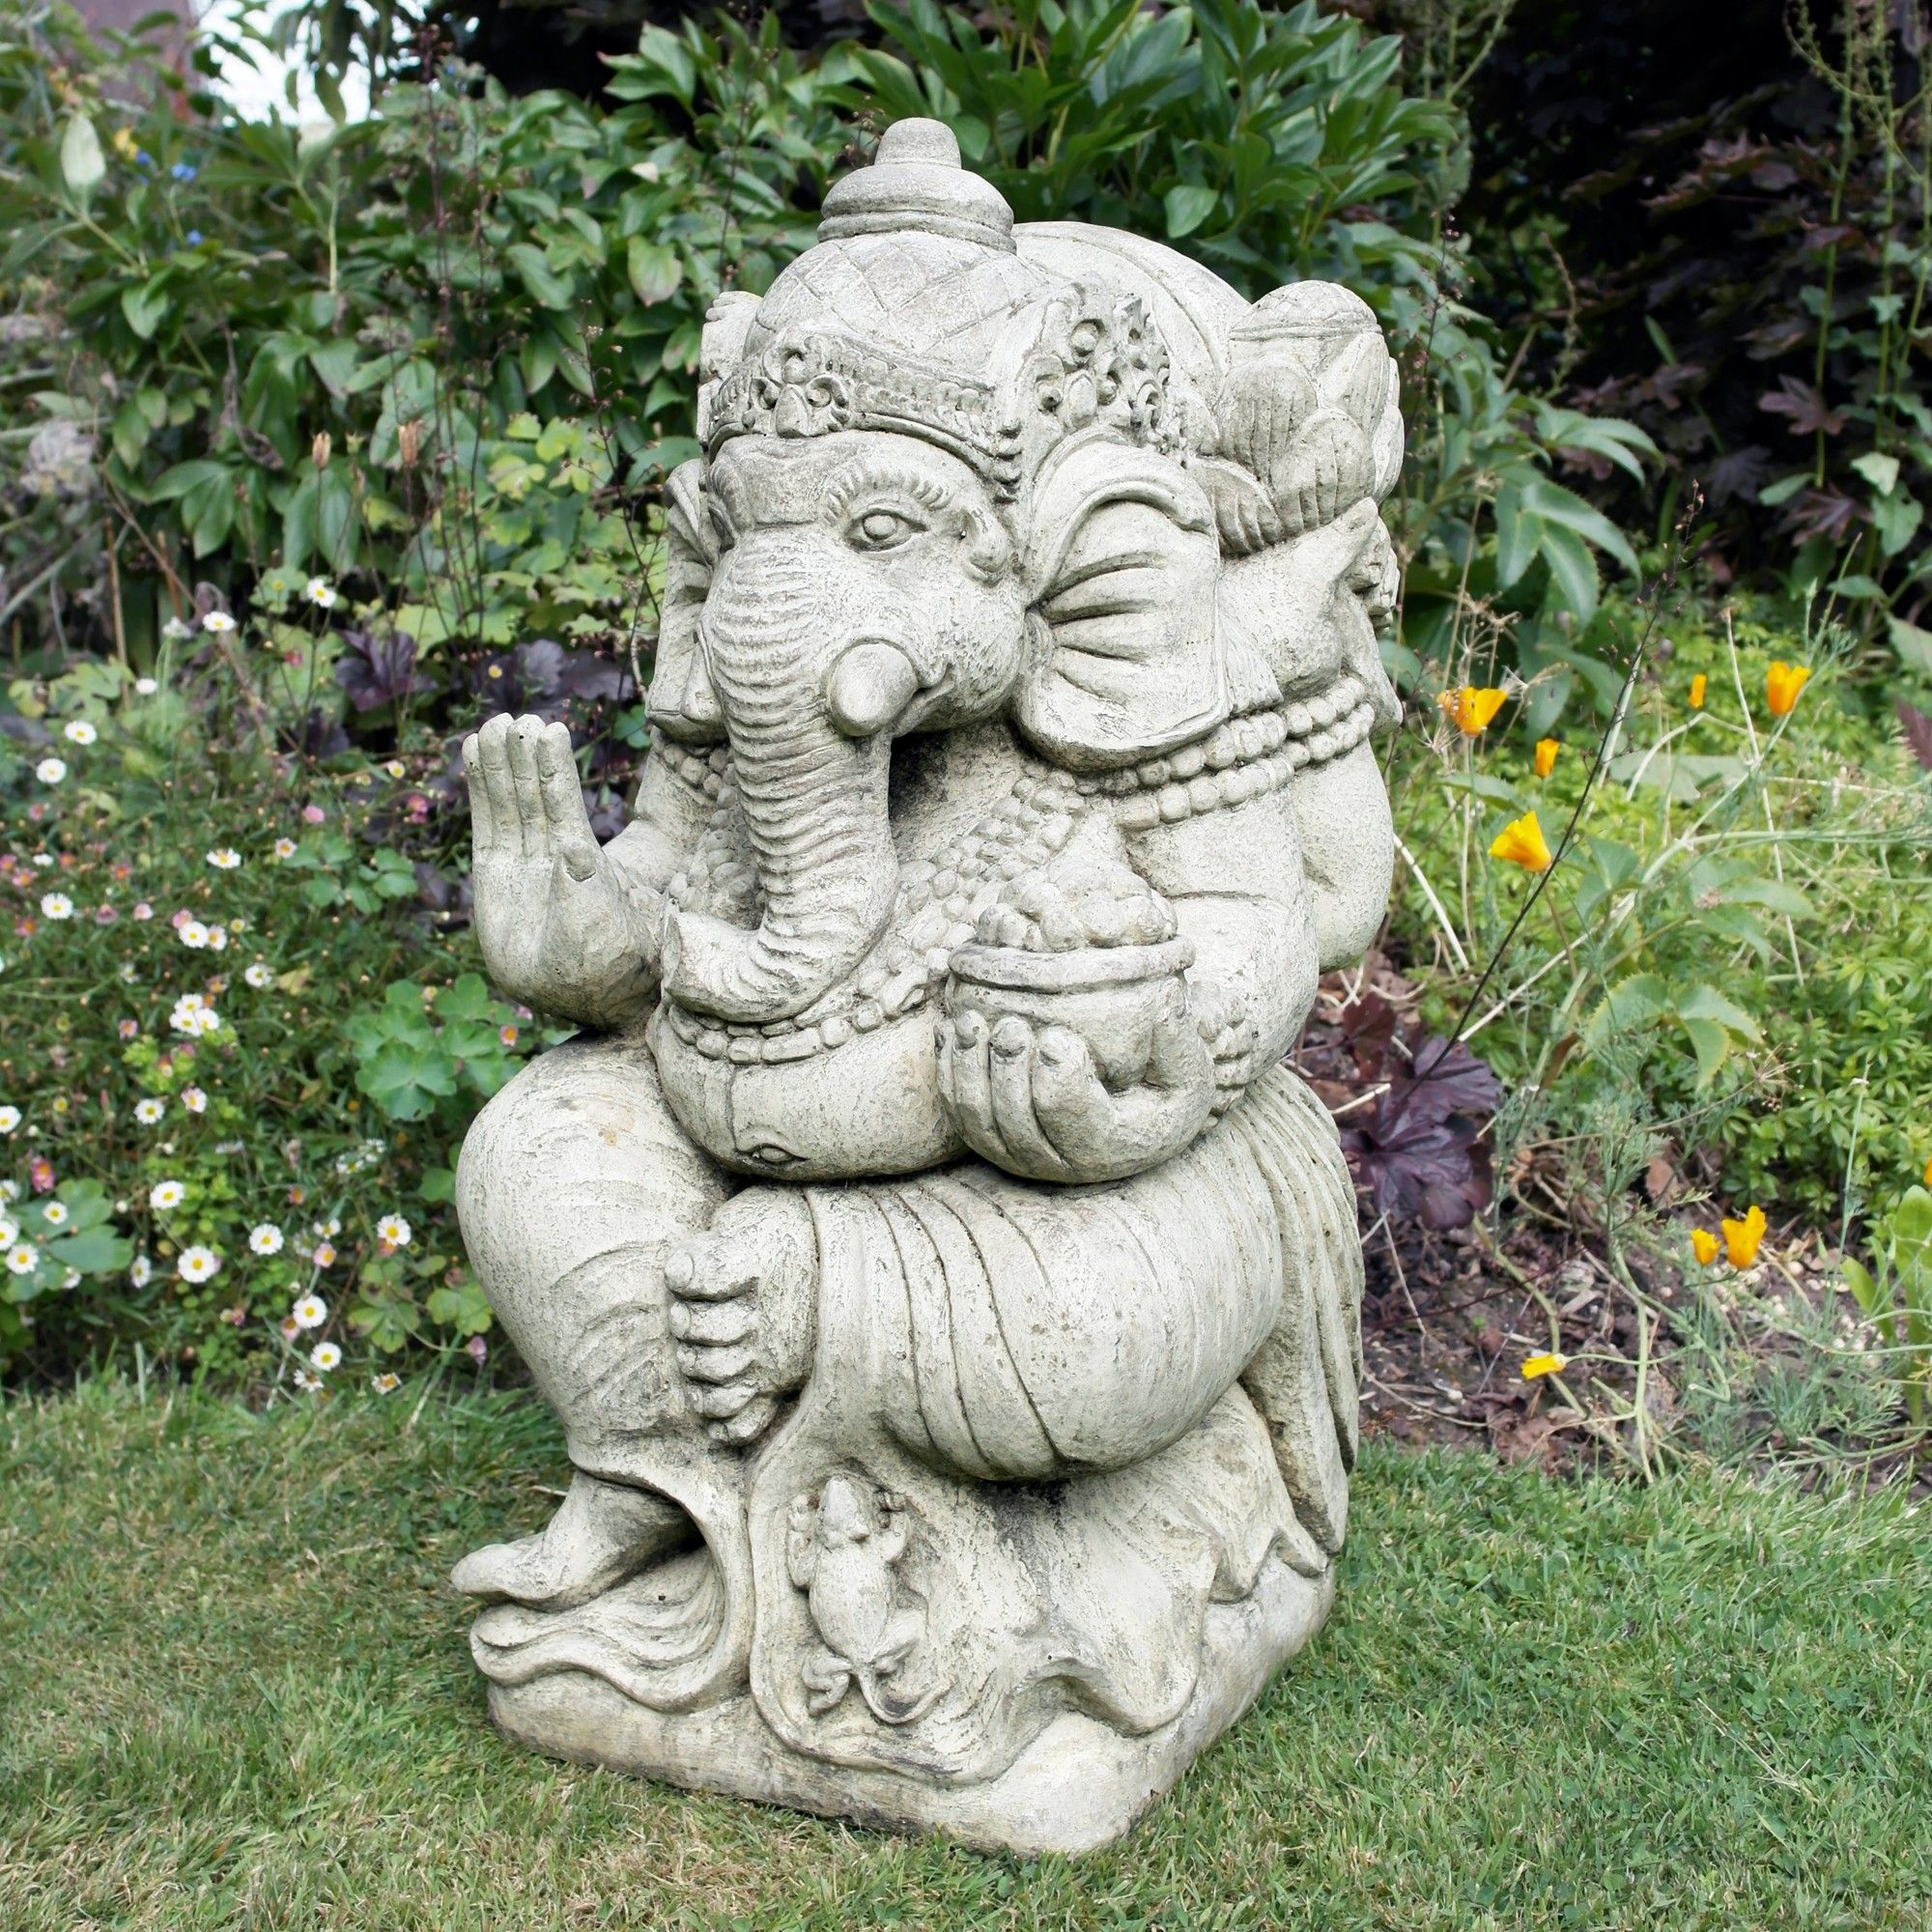 Ganesh Stone Buddha Ornament Large Garden Statue Buy now at http